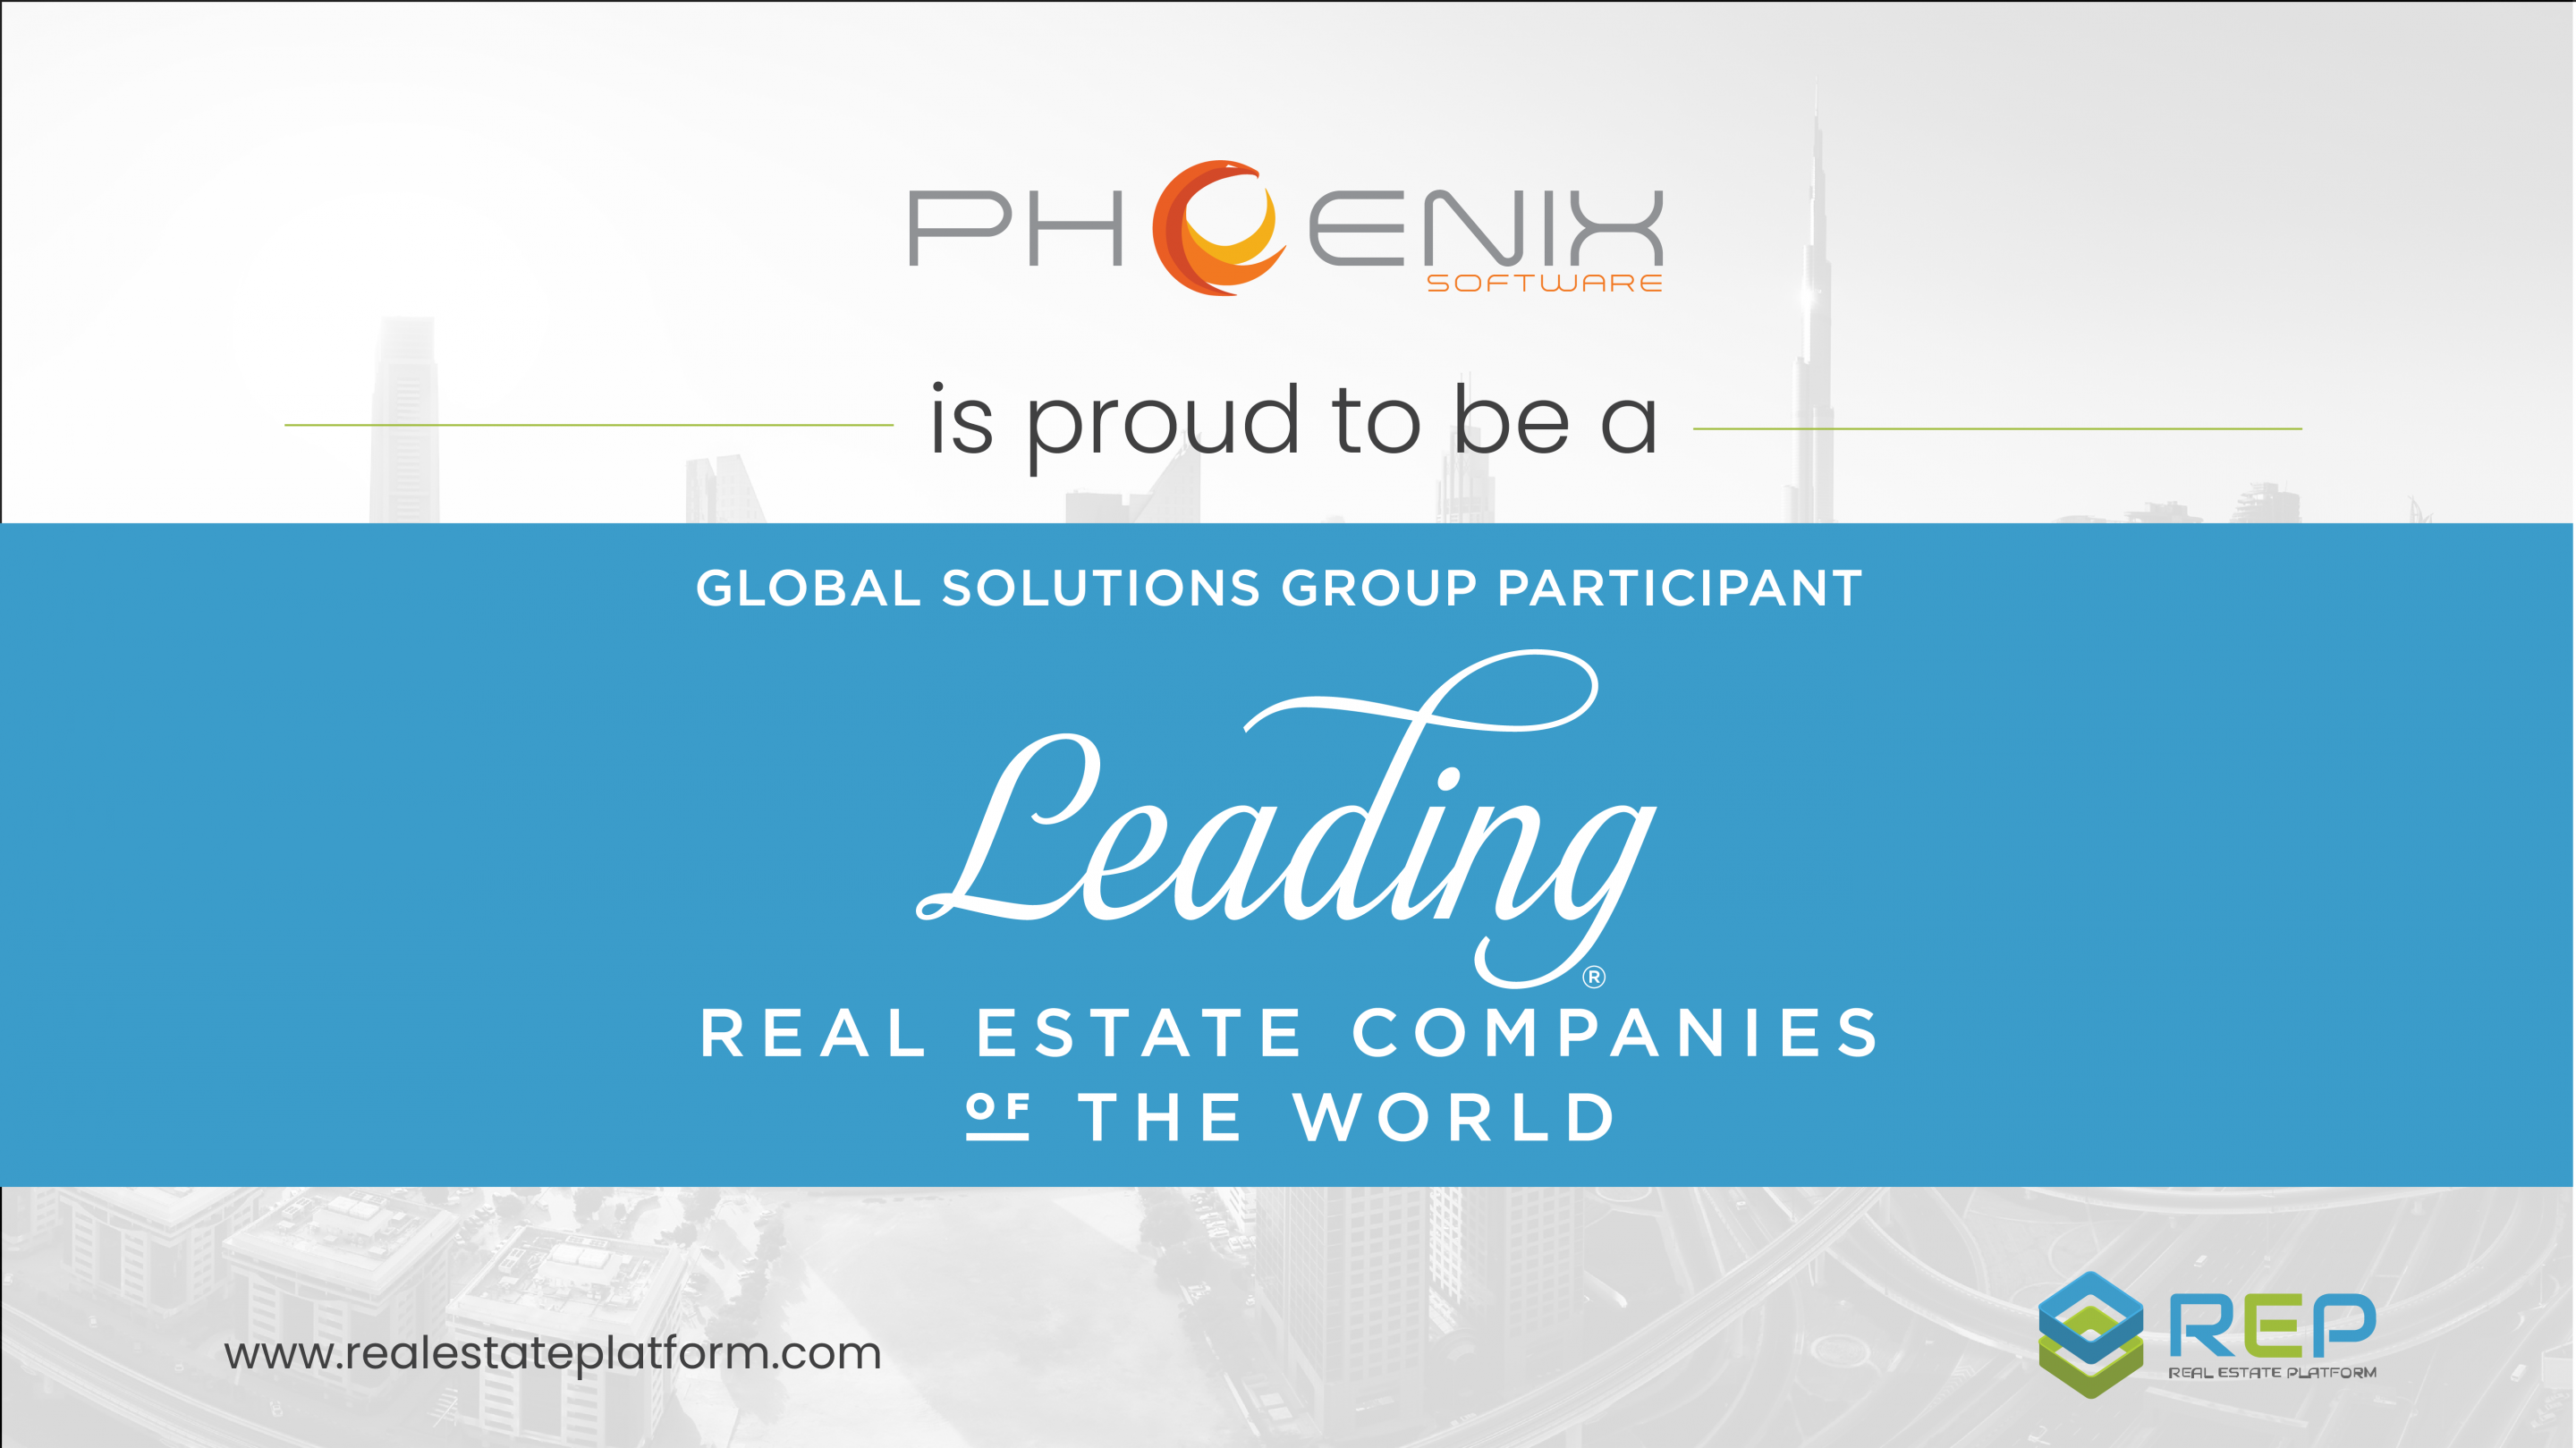 Phoenix Software becomes a member of LeadingRE